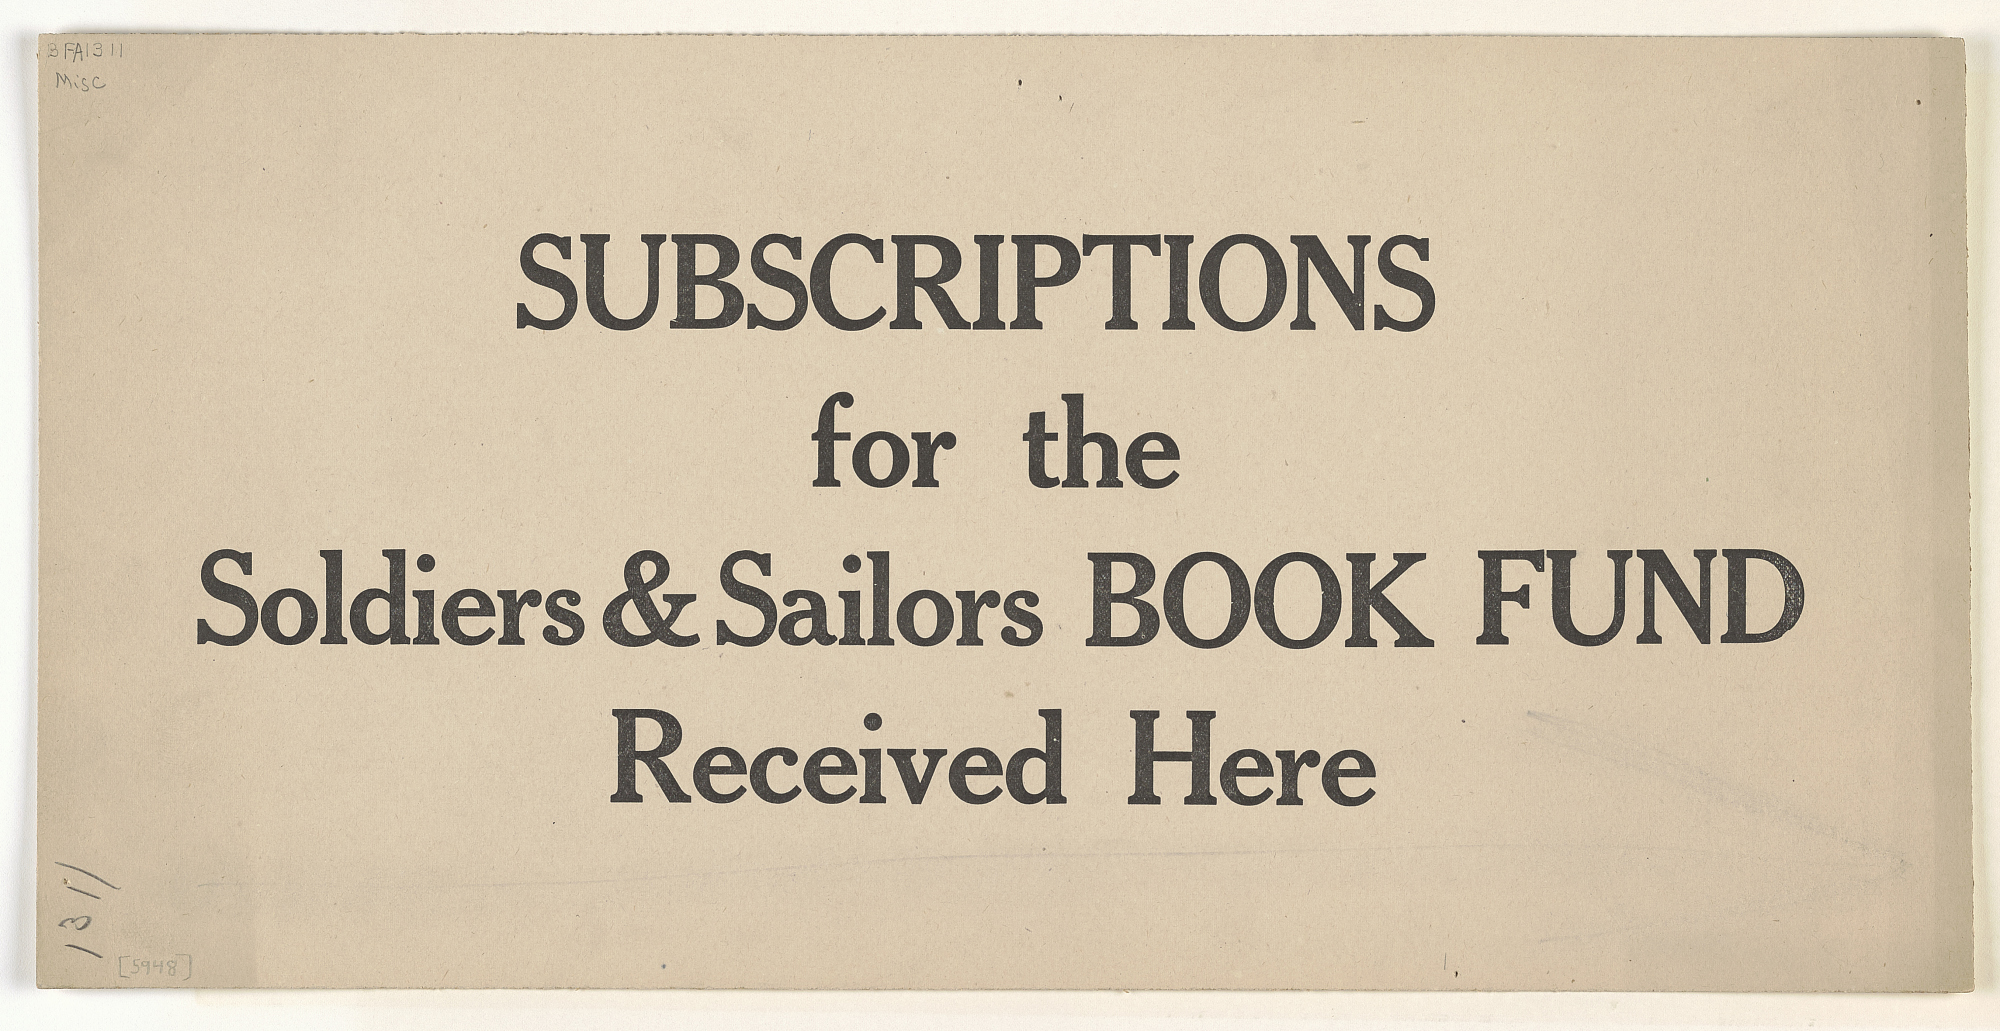 Subscriptions for the Soldiers & Sailors Book Fund Received Here. Princeton University Library.